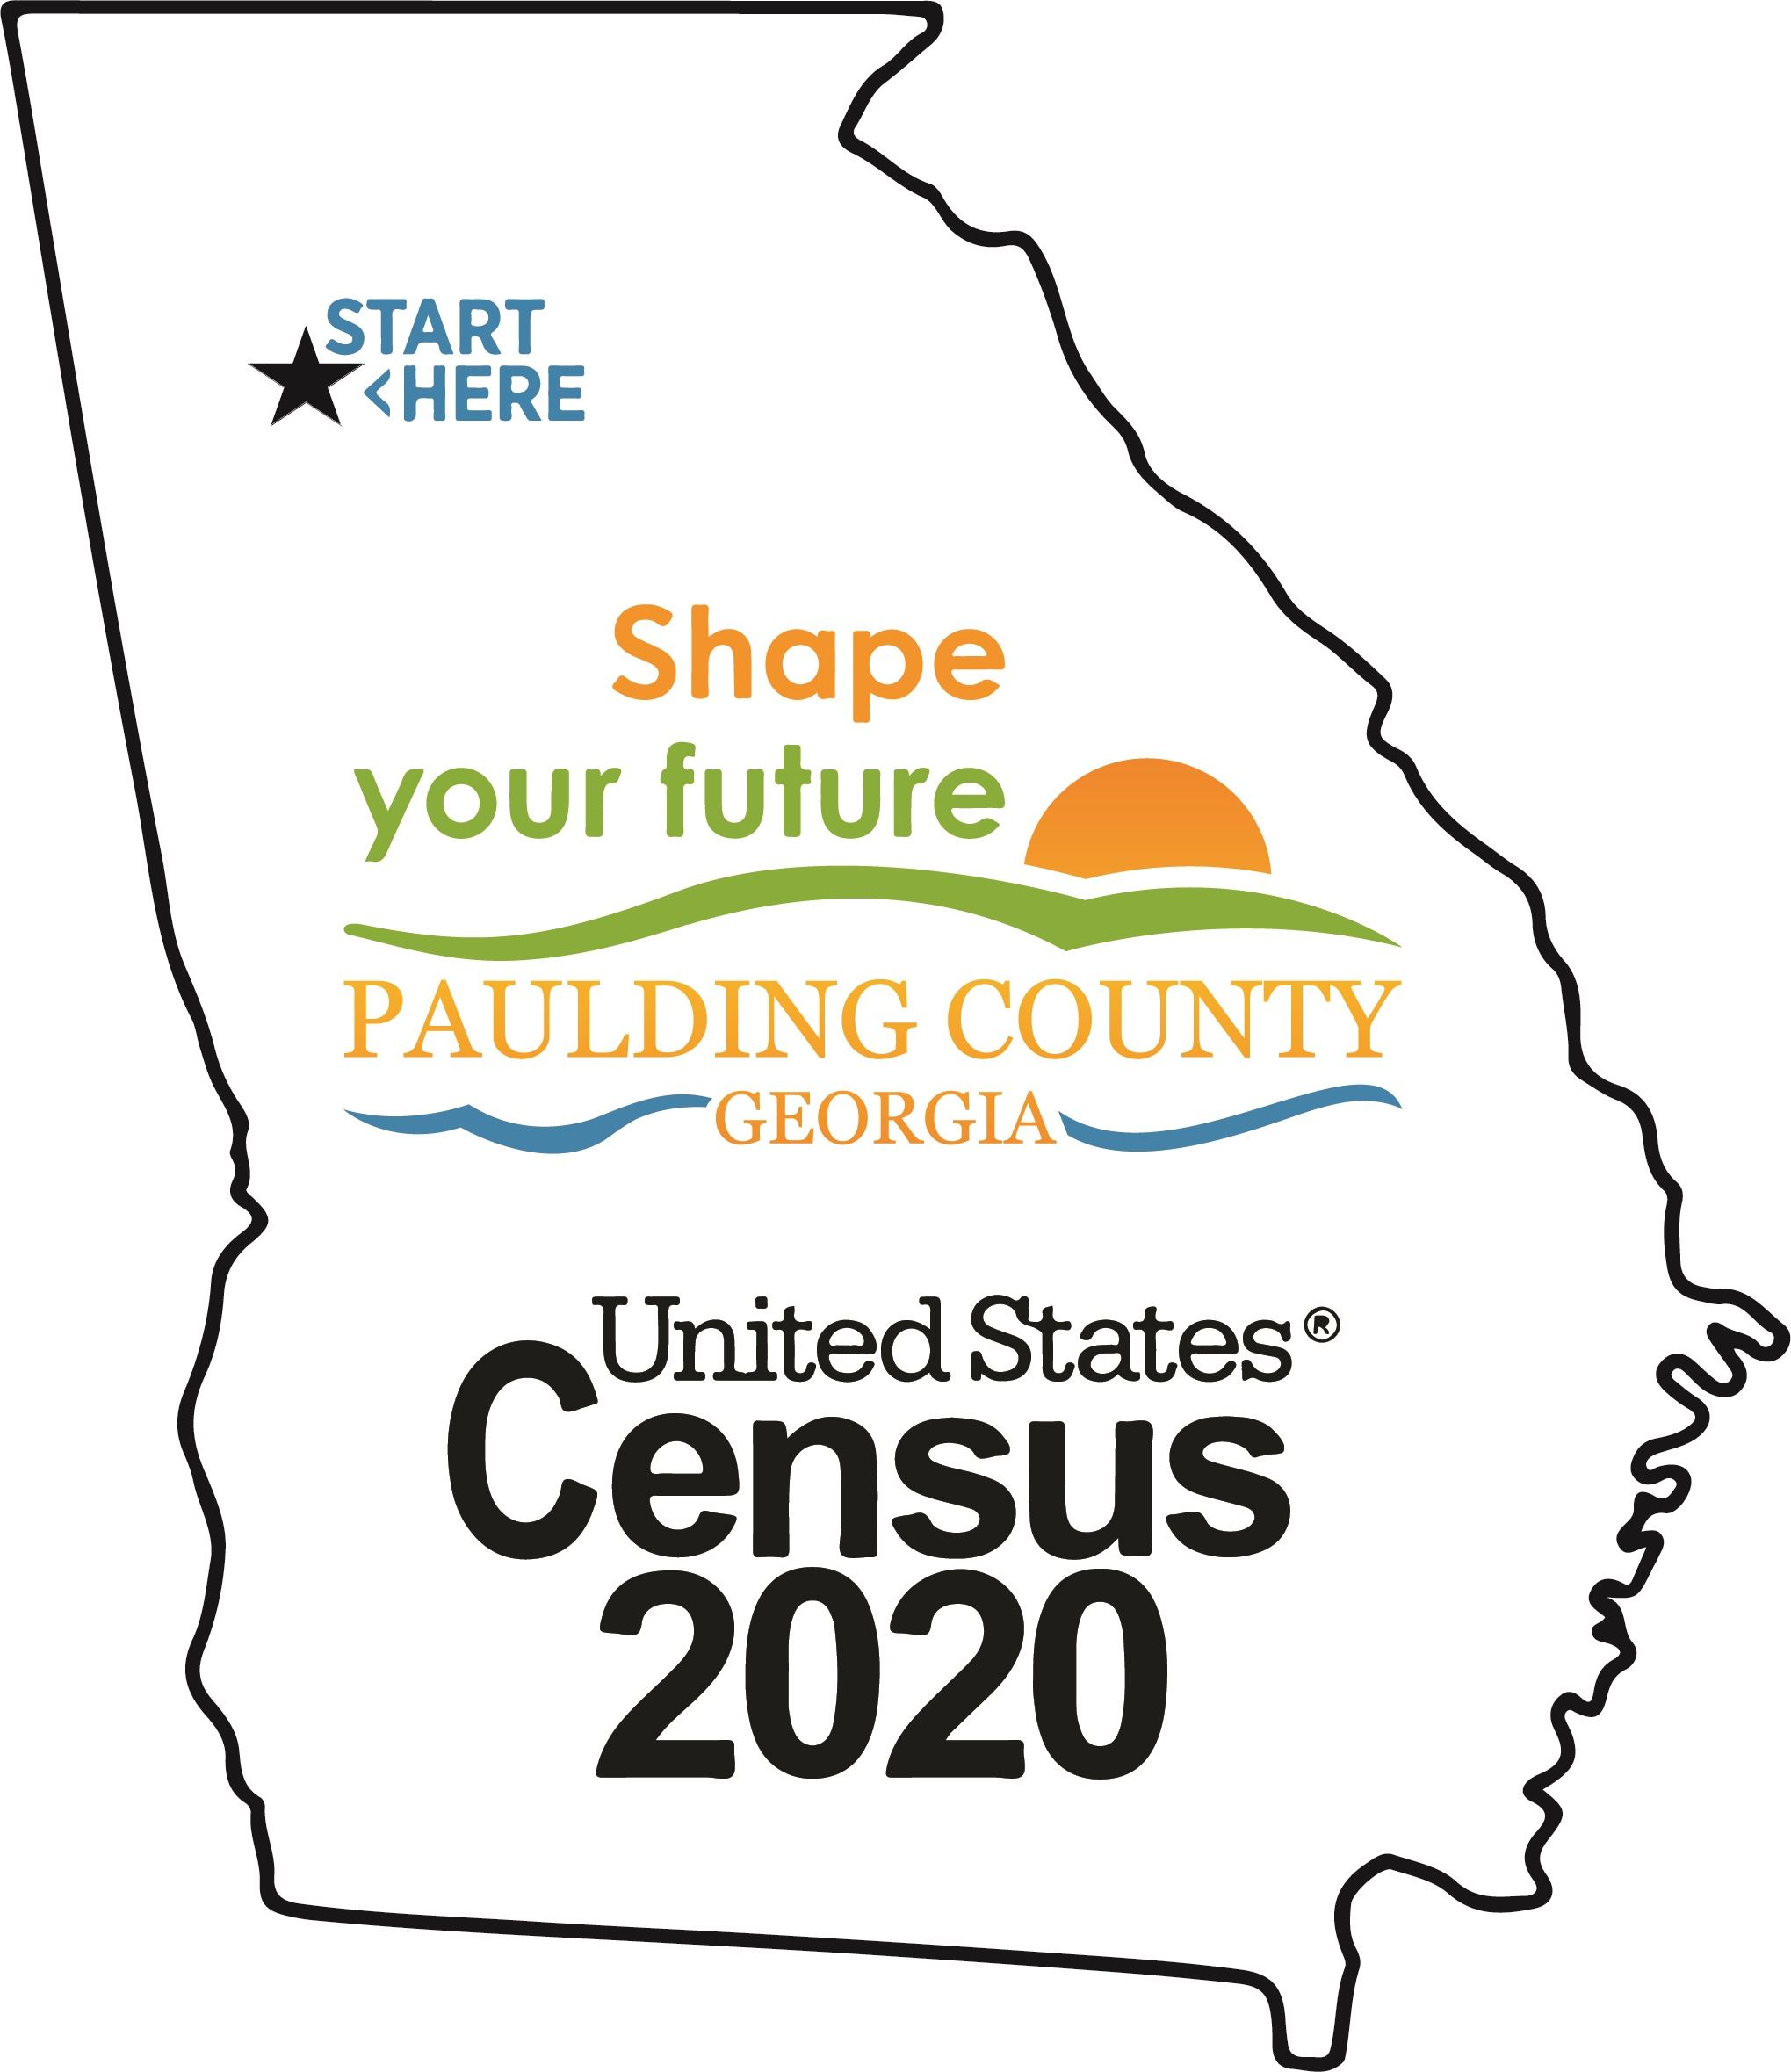 PauldingCountyCensus2020_PrintFile